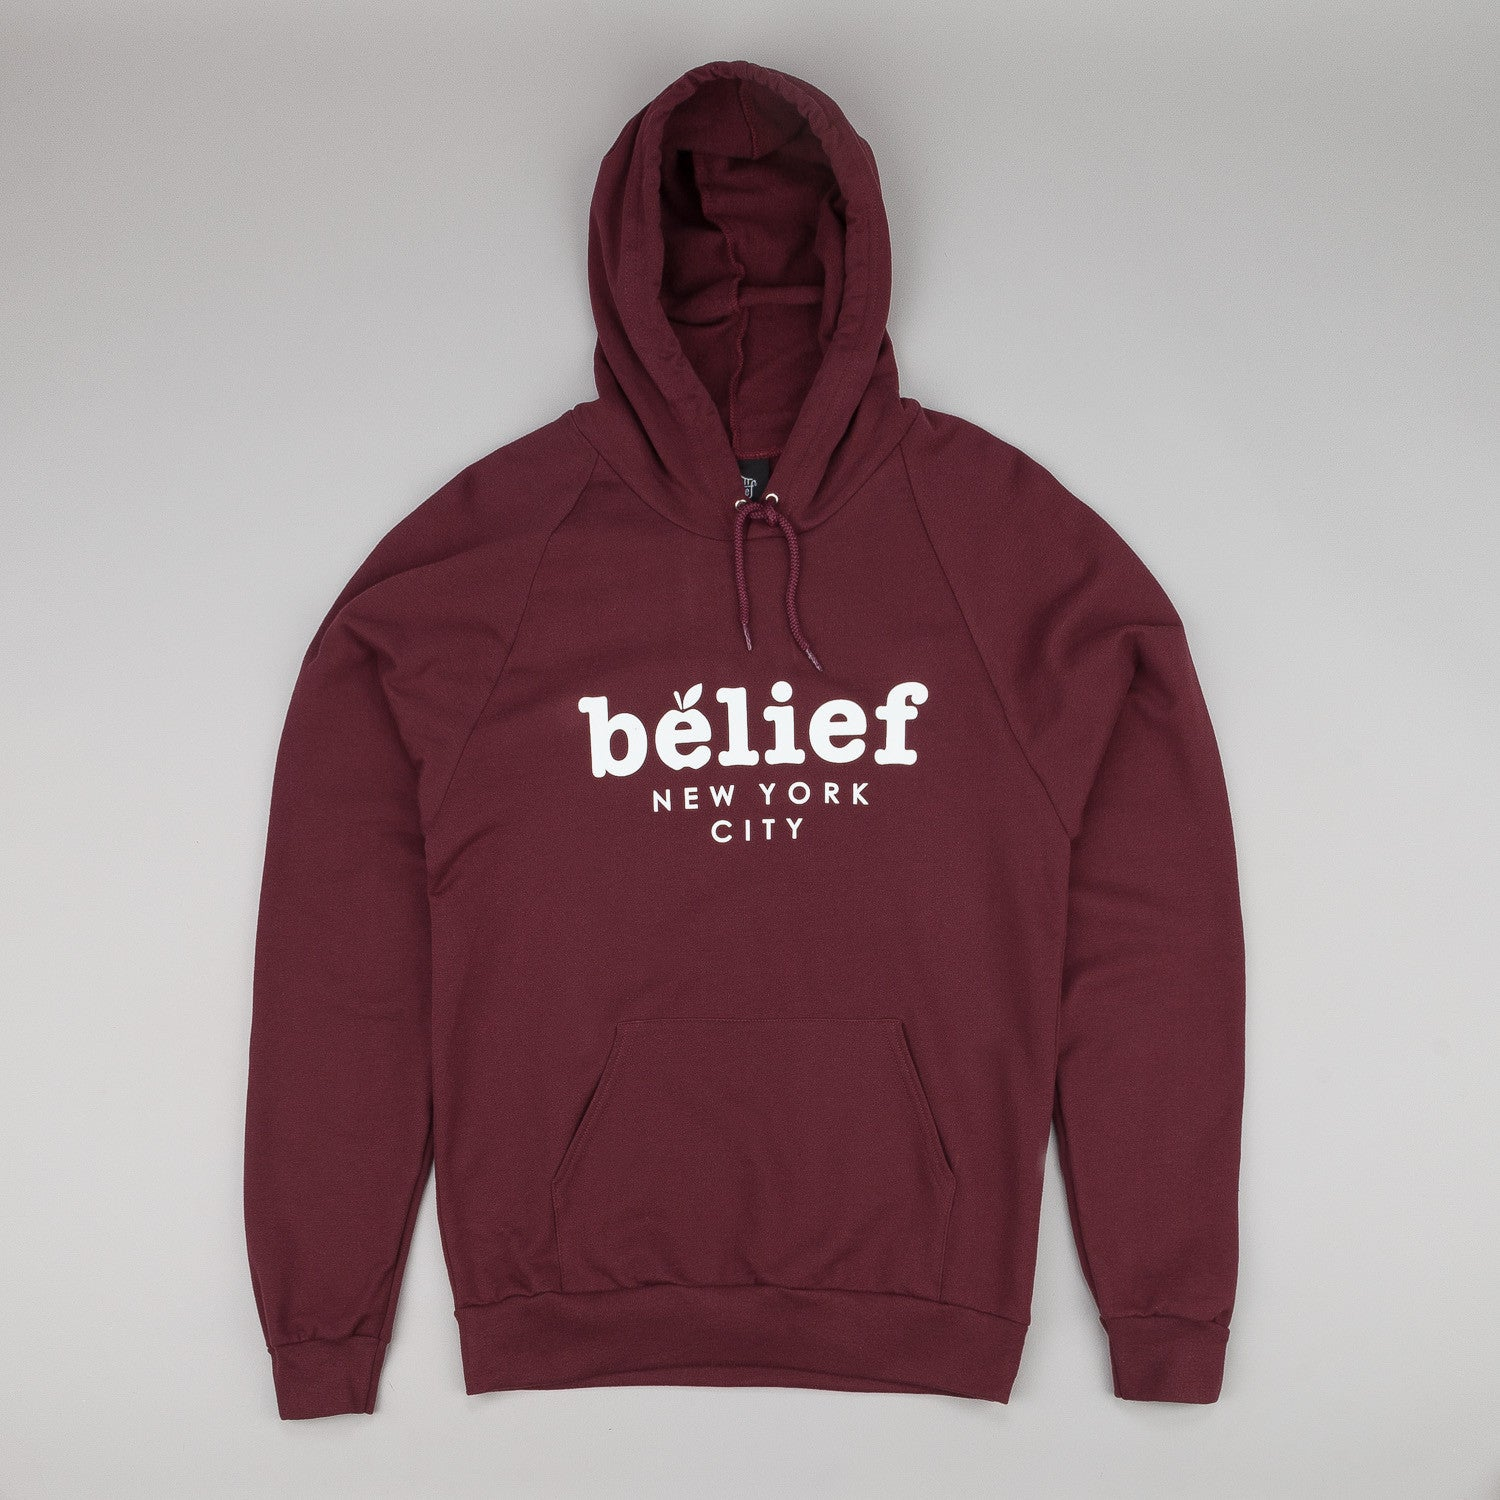 Belief Market Hooded Sweatshirt - Burgundy